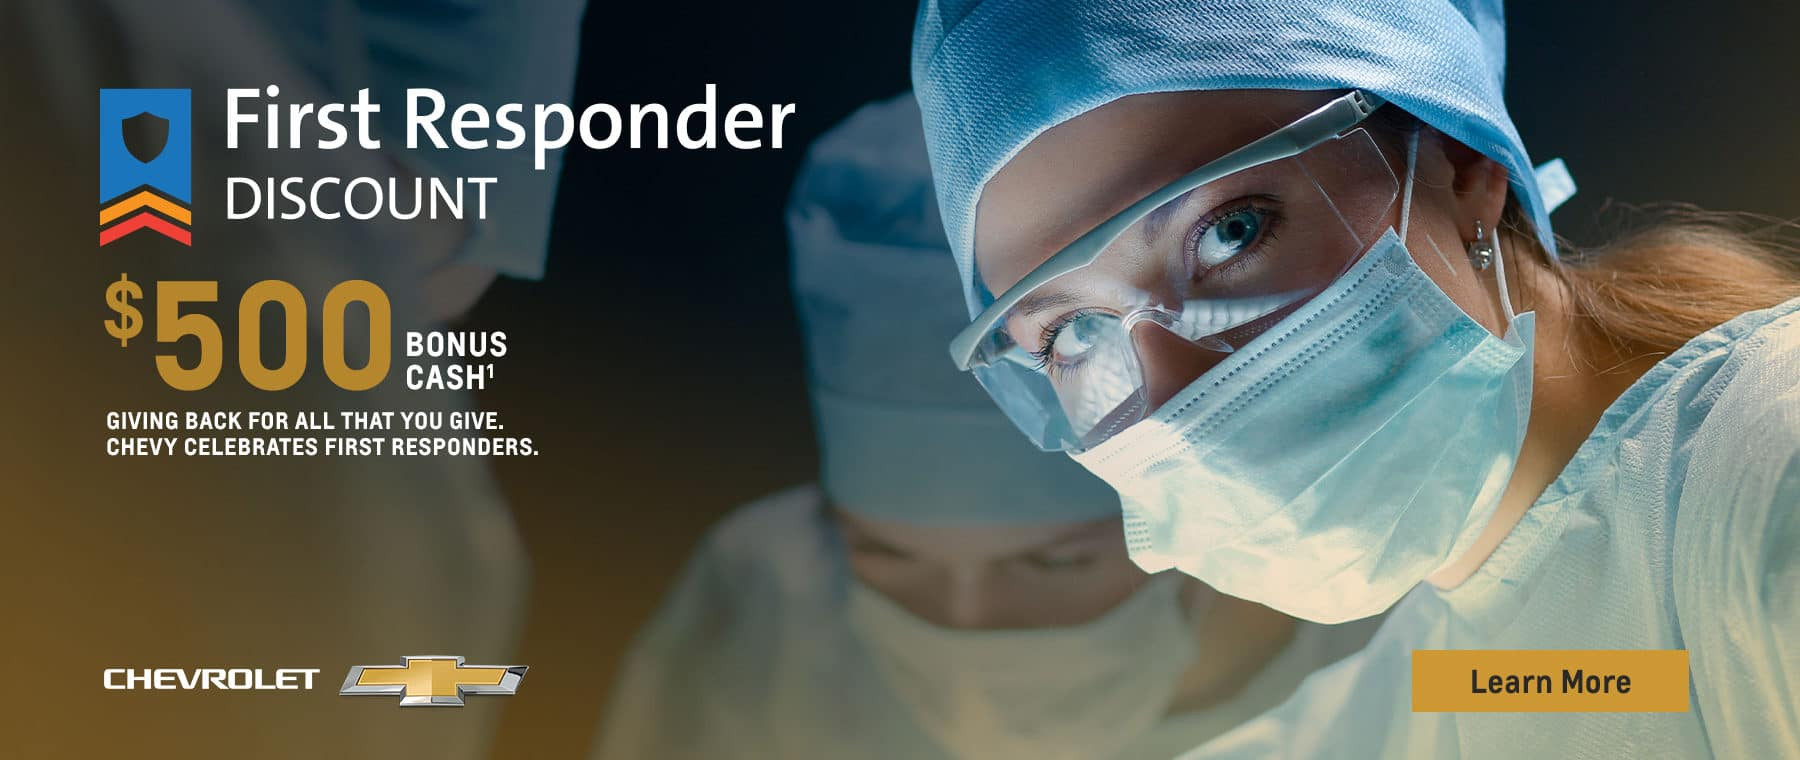 23_OCT_FIRST RESPONDERS SPECIAL_NATIONAL_1800x760